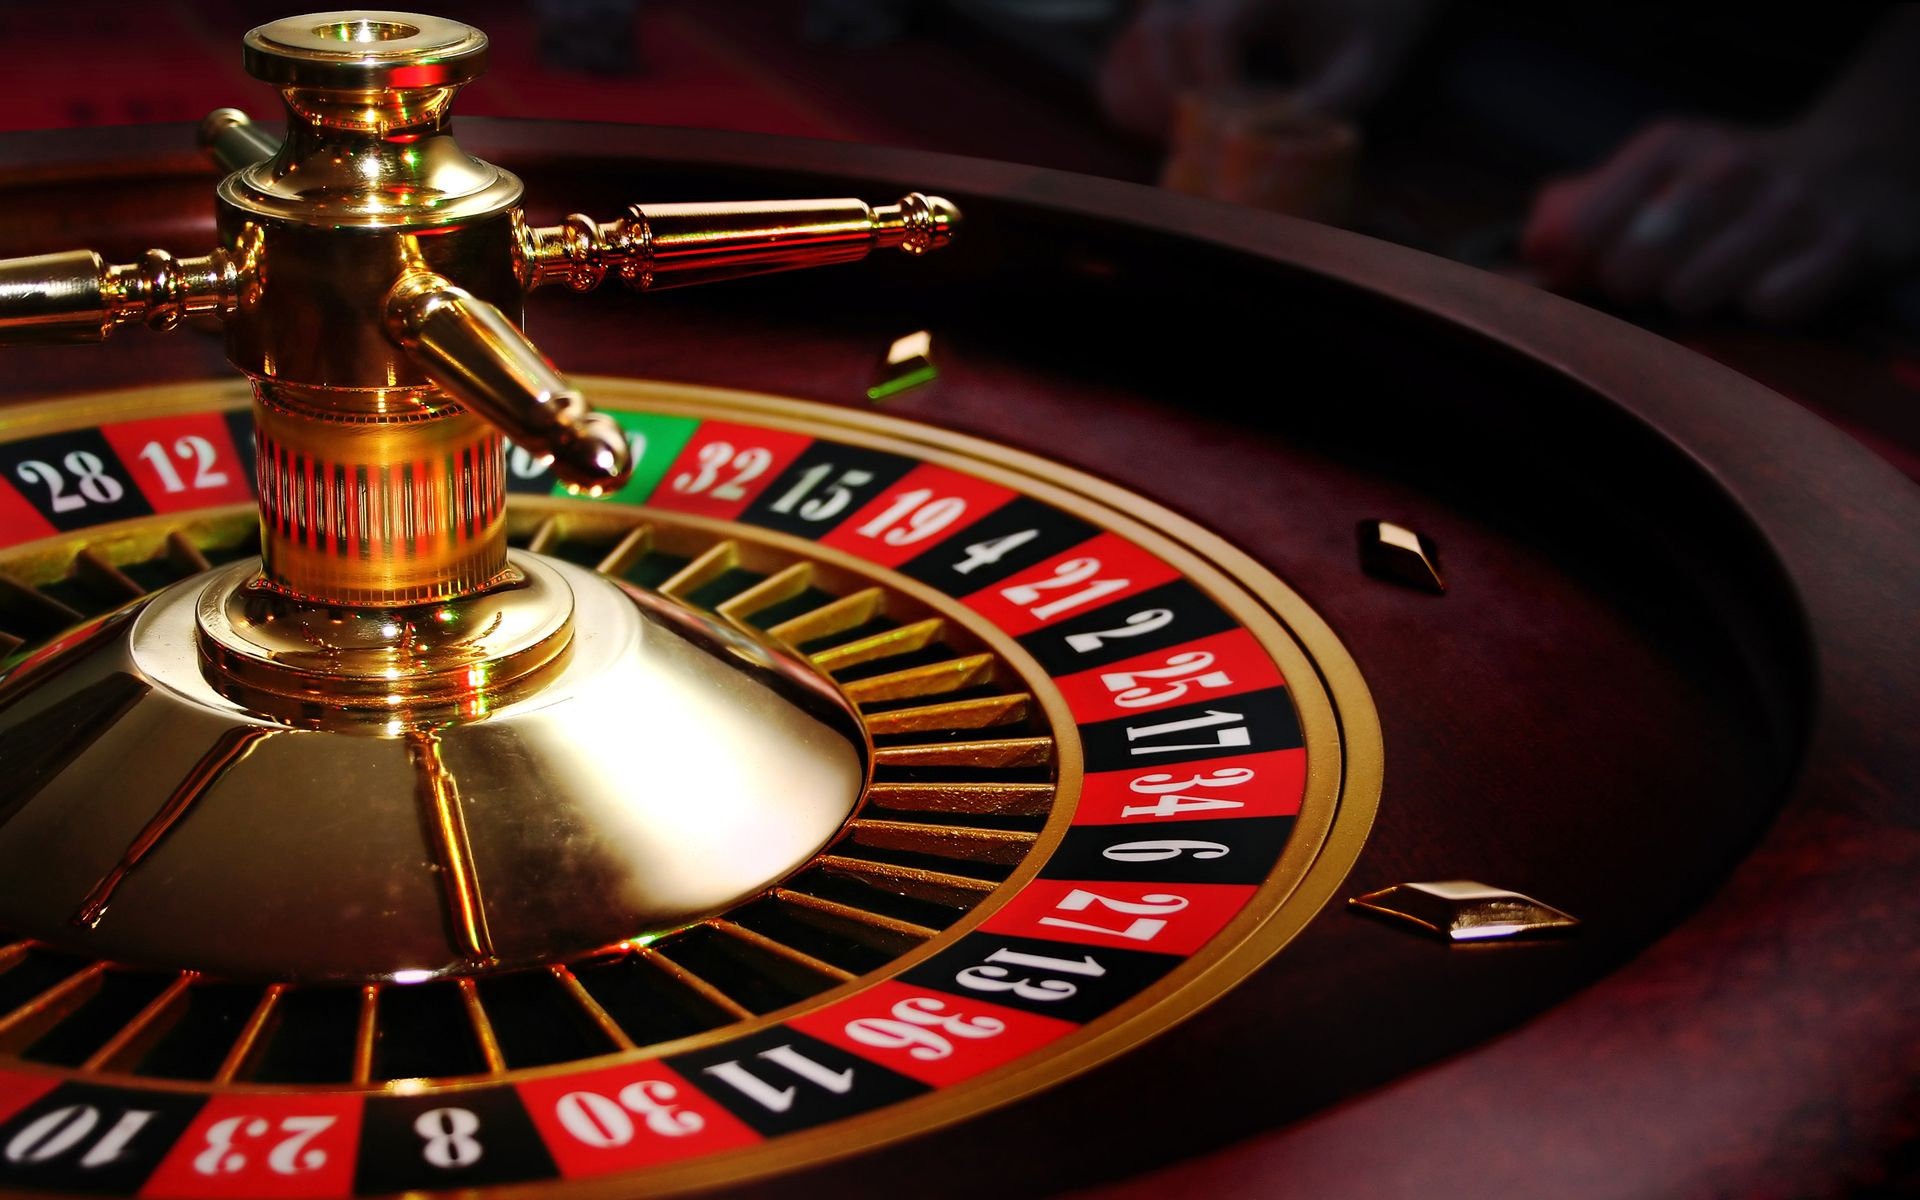 1 METHODE ROULETTE PROFESSIONNELLE - SUR LES NUMEROS PLEINS ! Paris FORMATION COACHING JEU DE ROULETTE